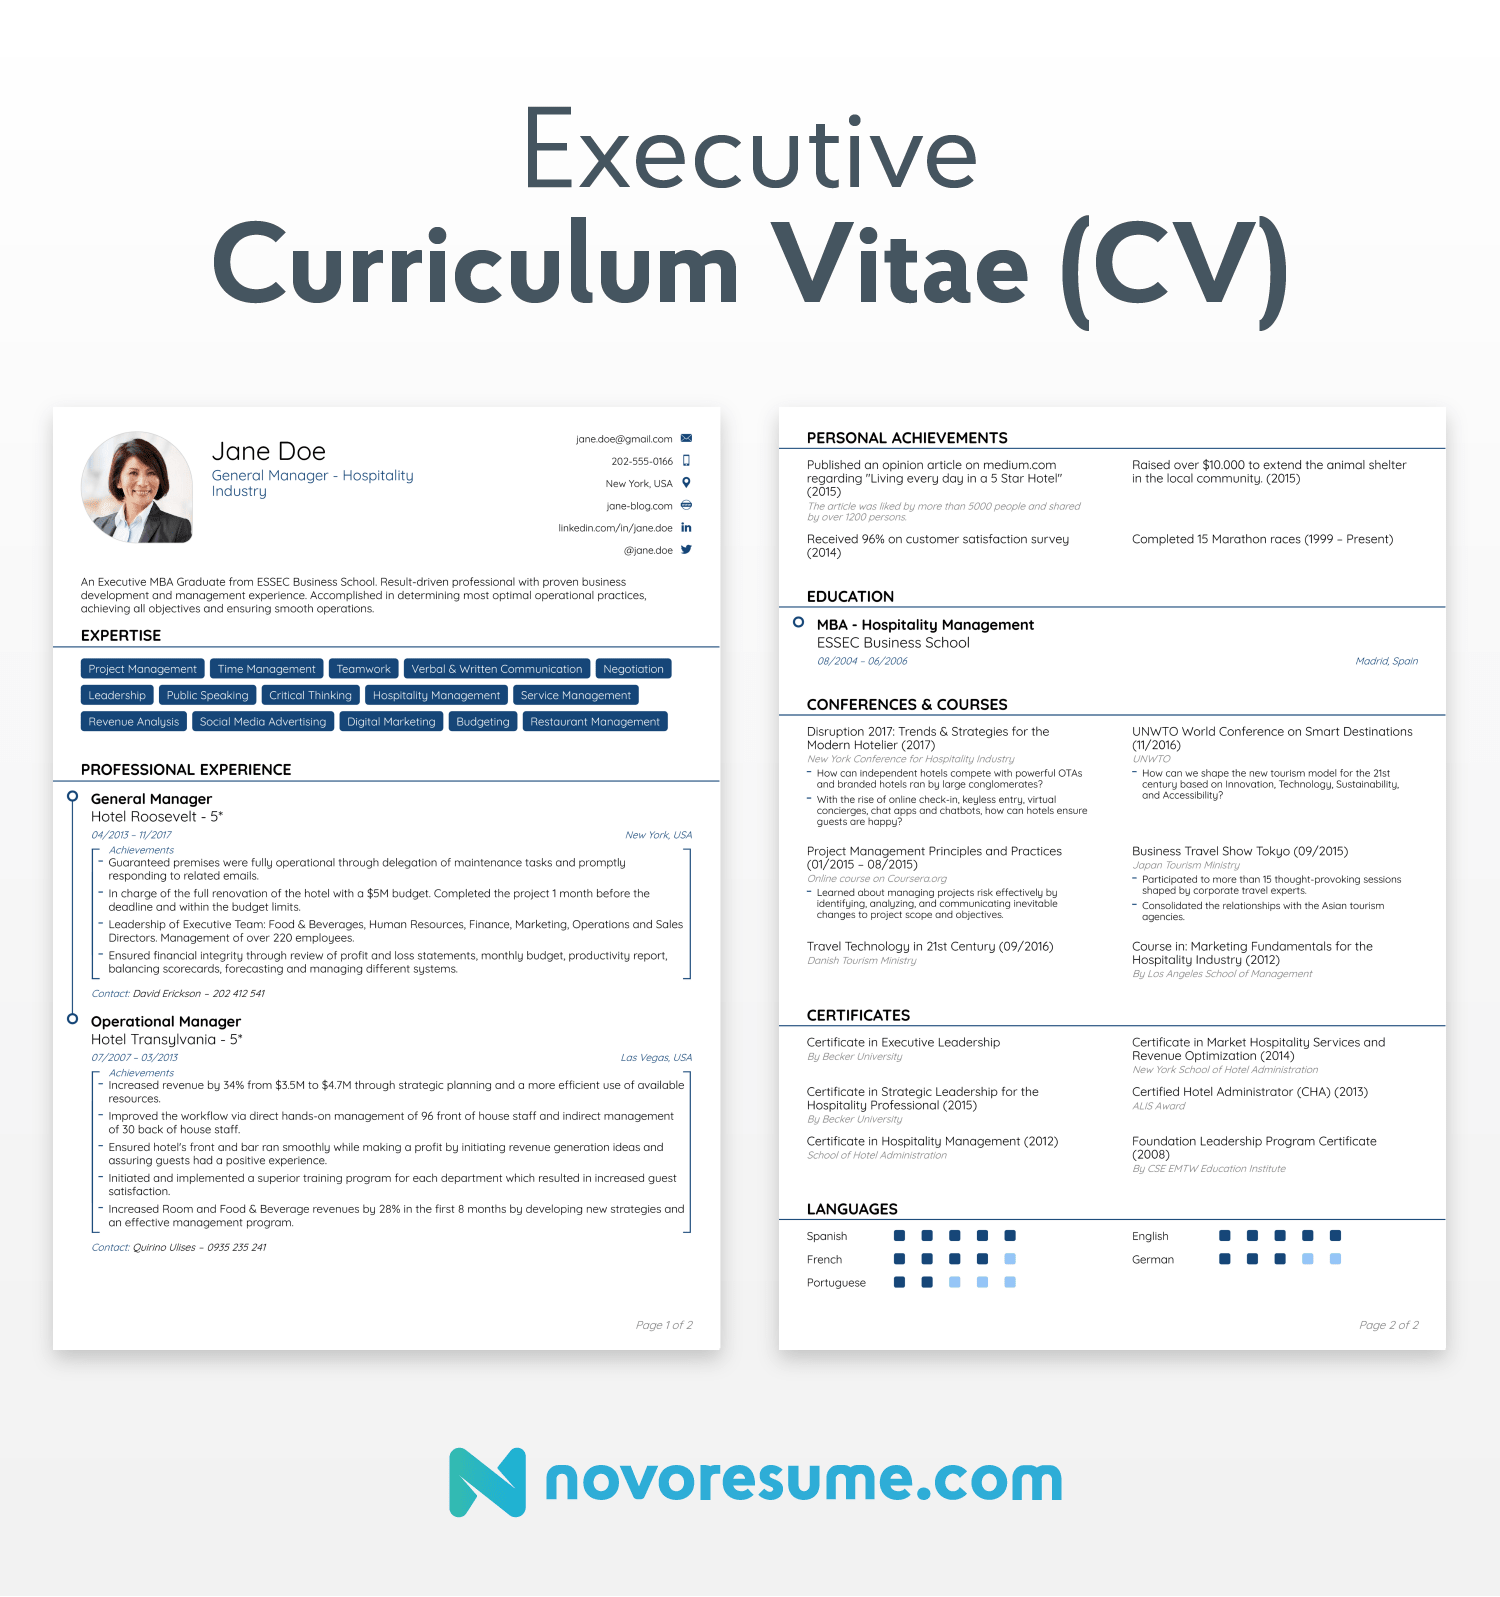 How To Write A Cv Curriculum Vitae In 2020 31 Examples